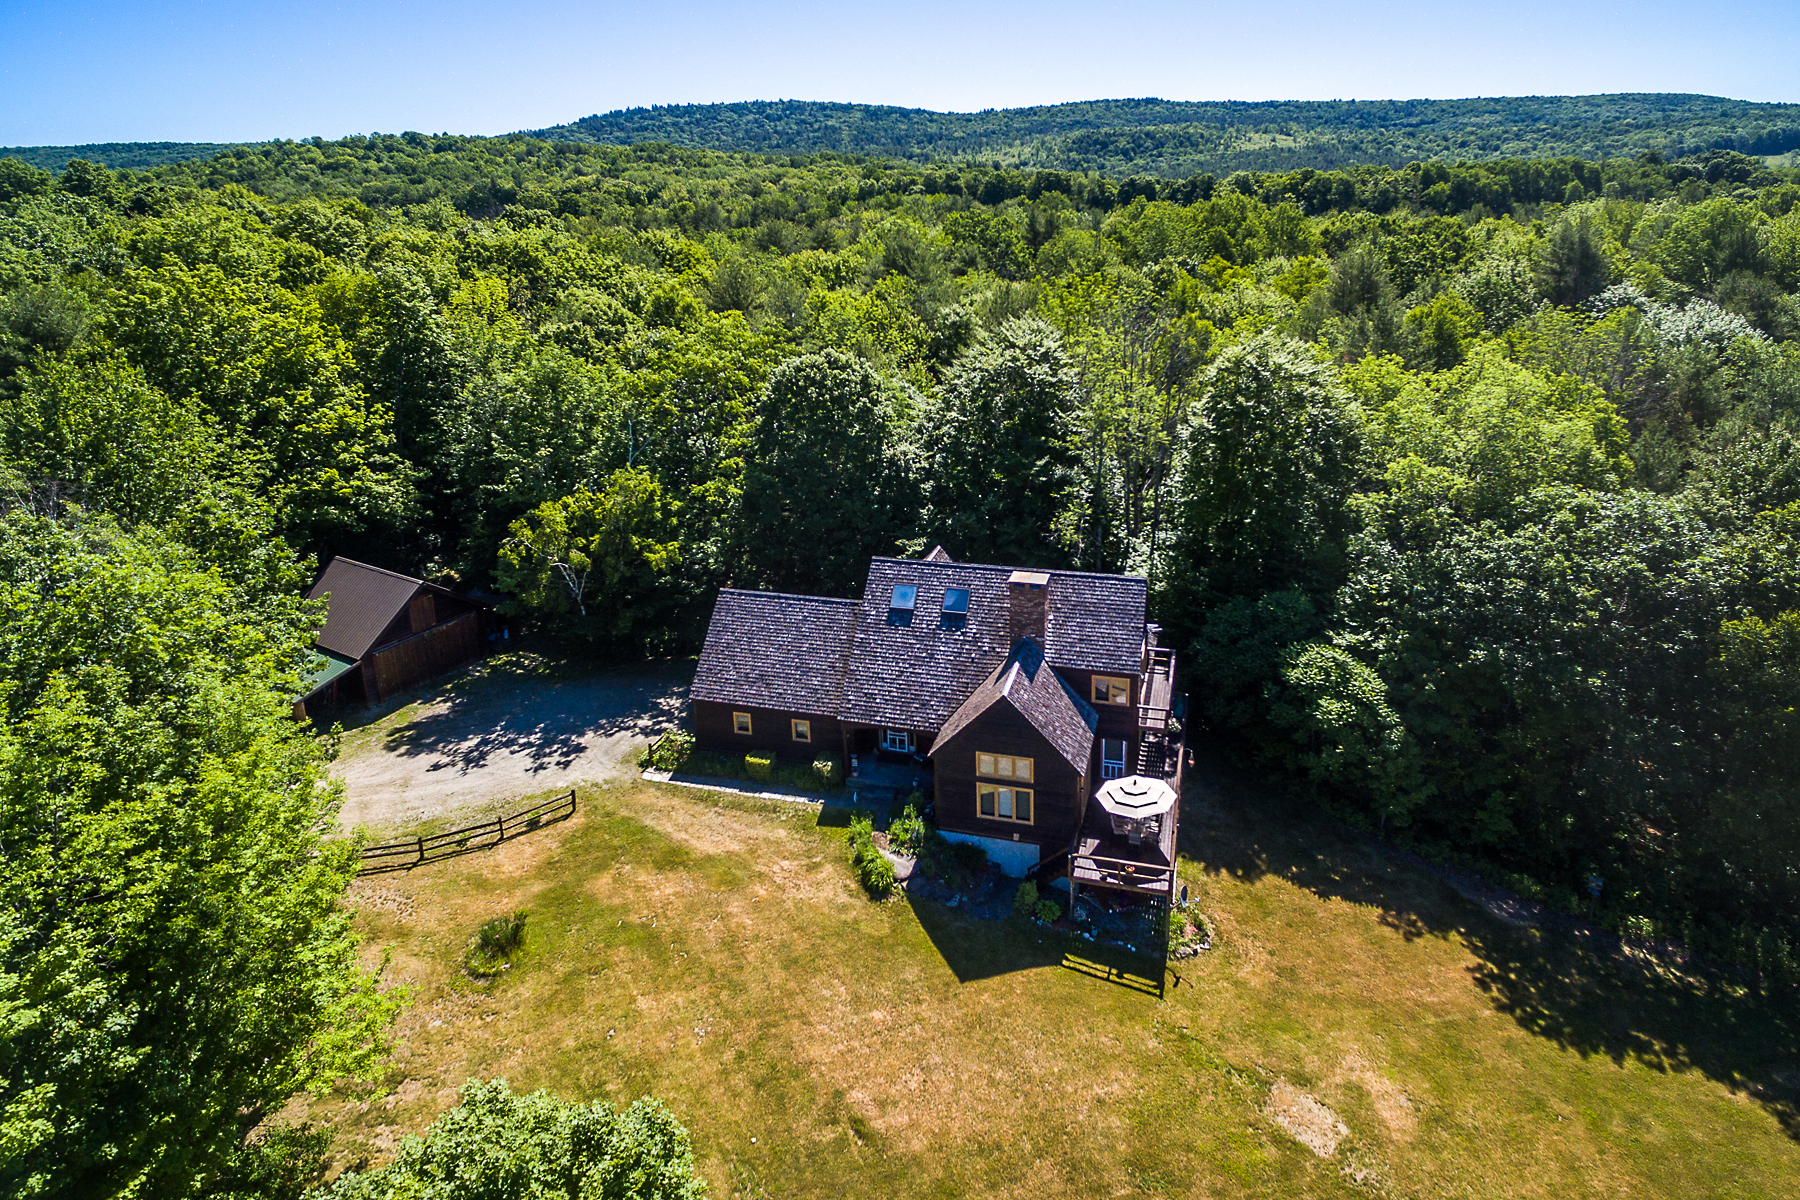 Single Family Homes for Sale at Spacious Home on 27 Acres with Beautiful Views! 322 Stone Hill Farm Rd Weathersfield, Vermont 05151 United States